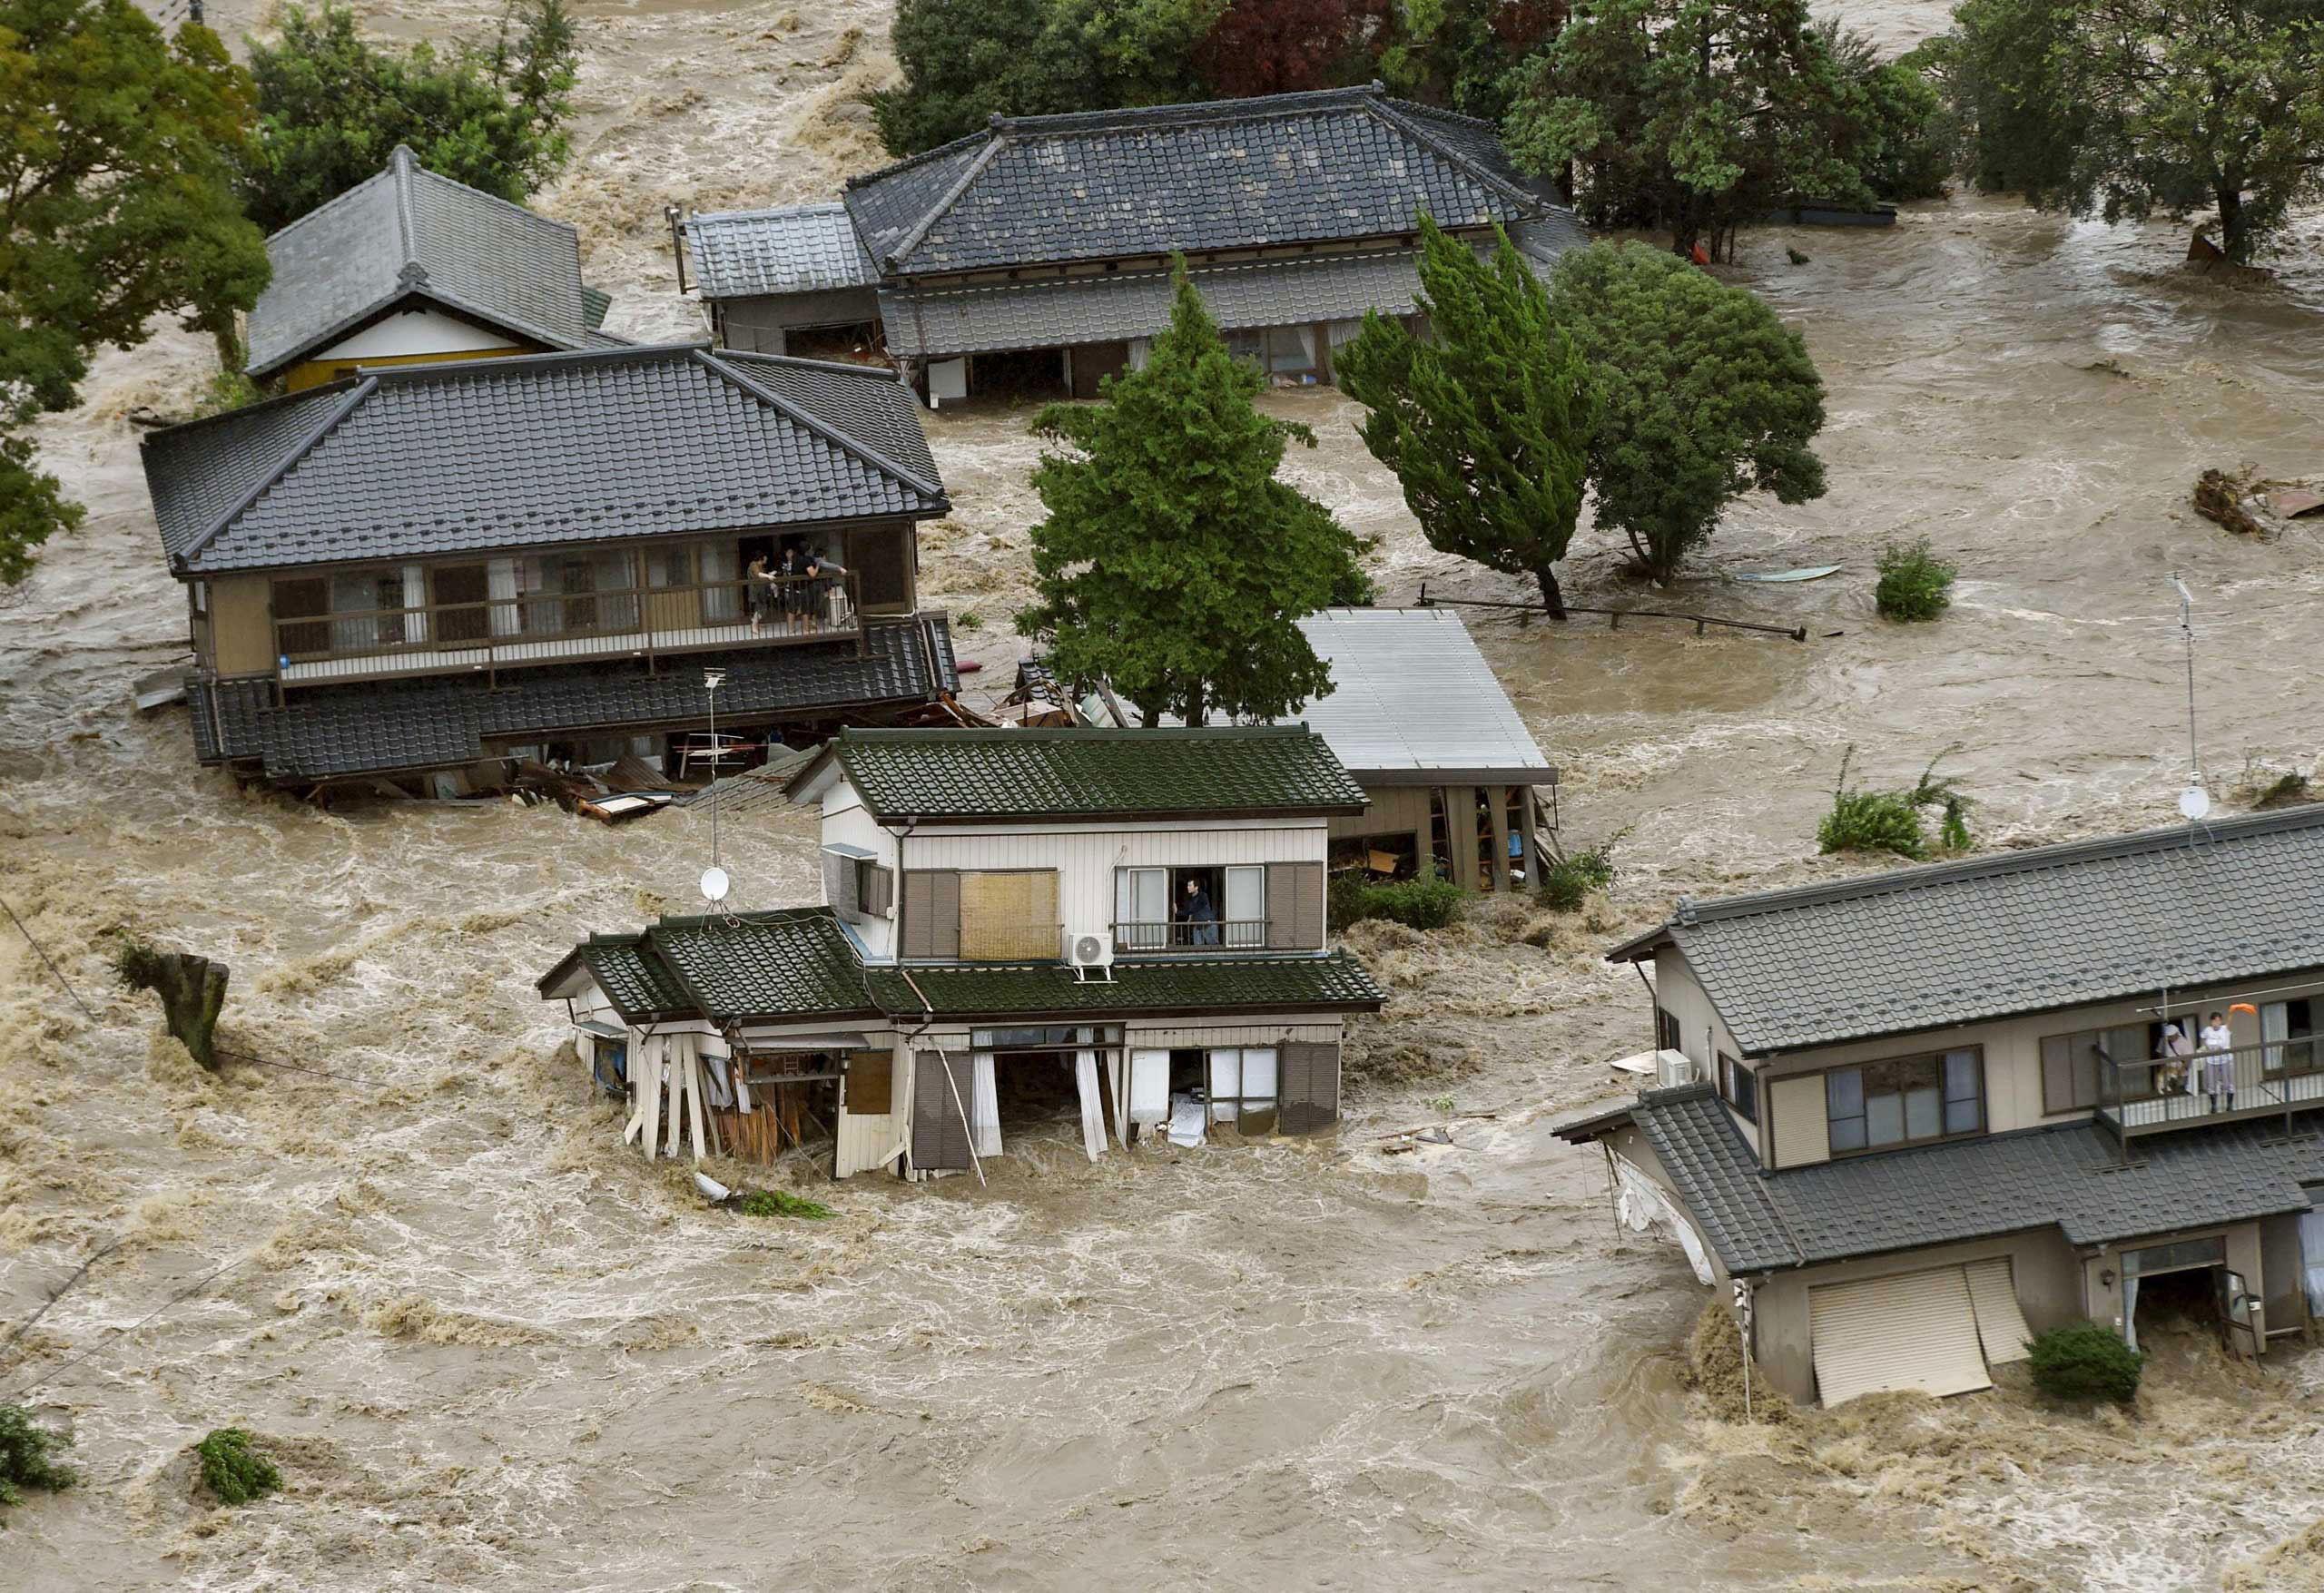 Residents wait for rescue helicopters at a flooded residential area as the Kinugawa river burst their banks, caused by typhoon Etau, in Joso, Ibaraki prefecture, Japan. Sept. 10, 2015.